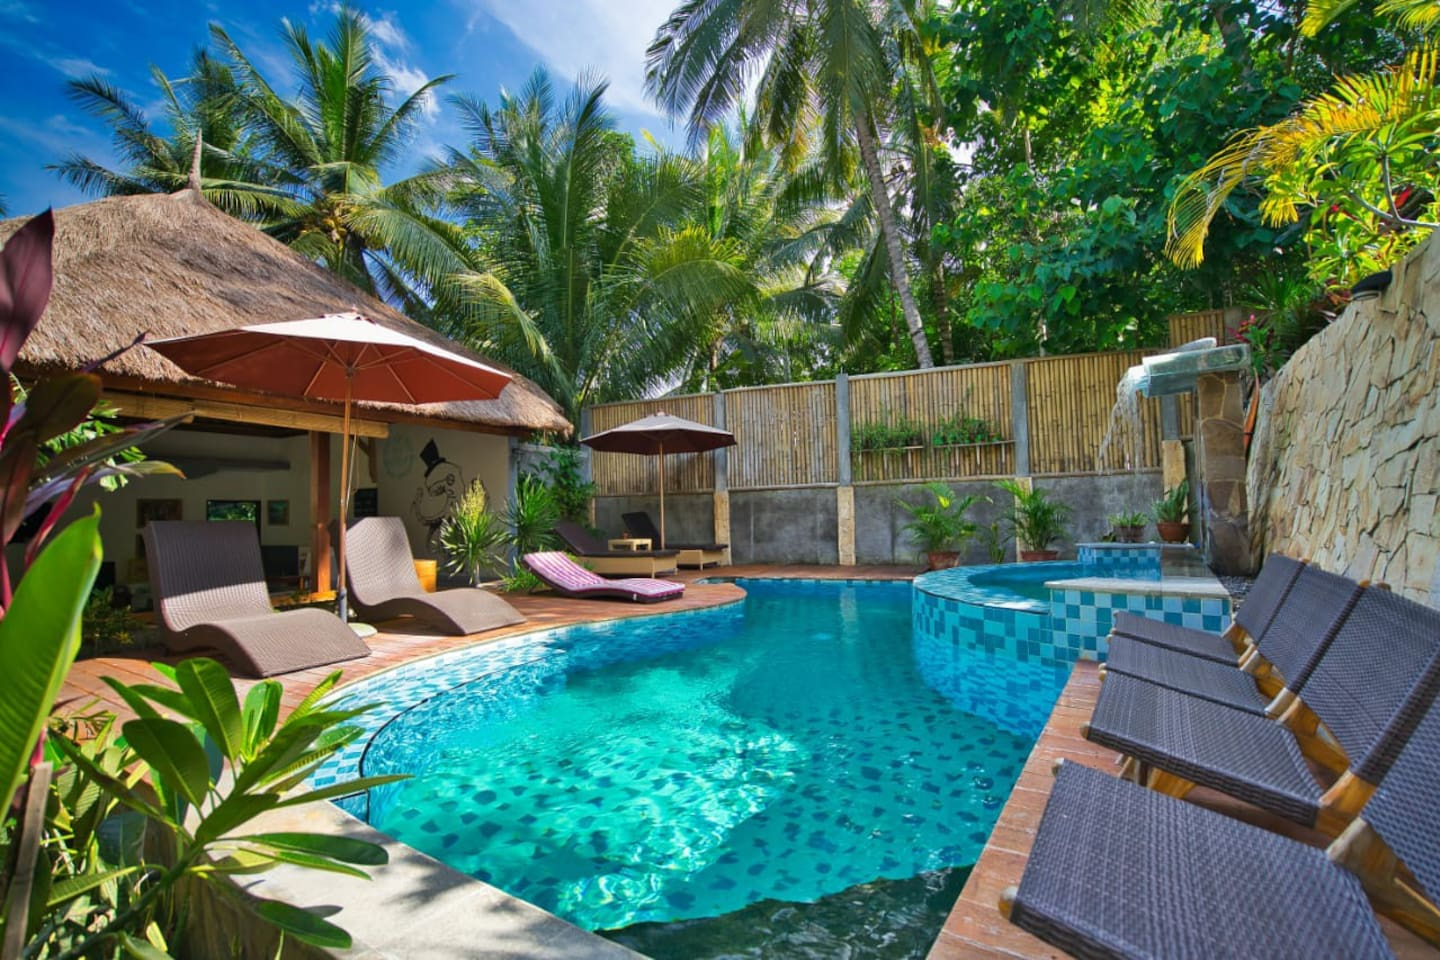 A shared plunge pool for your refreshment